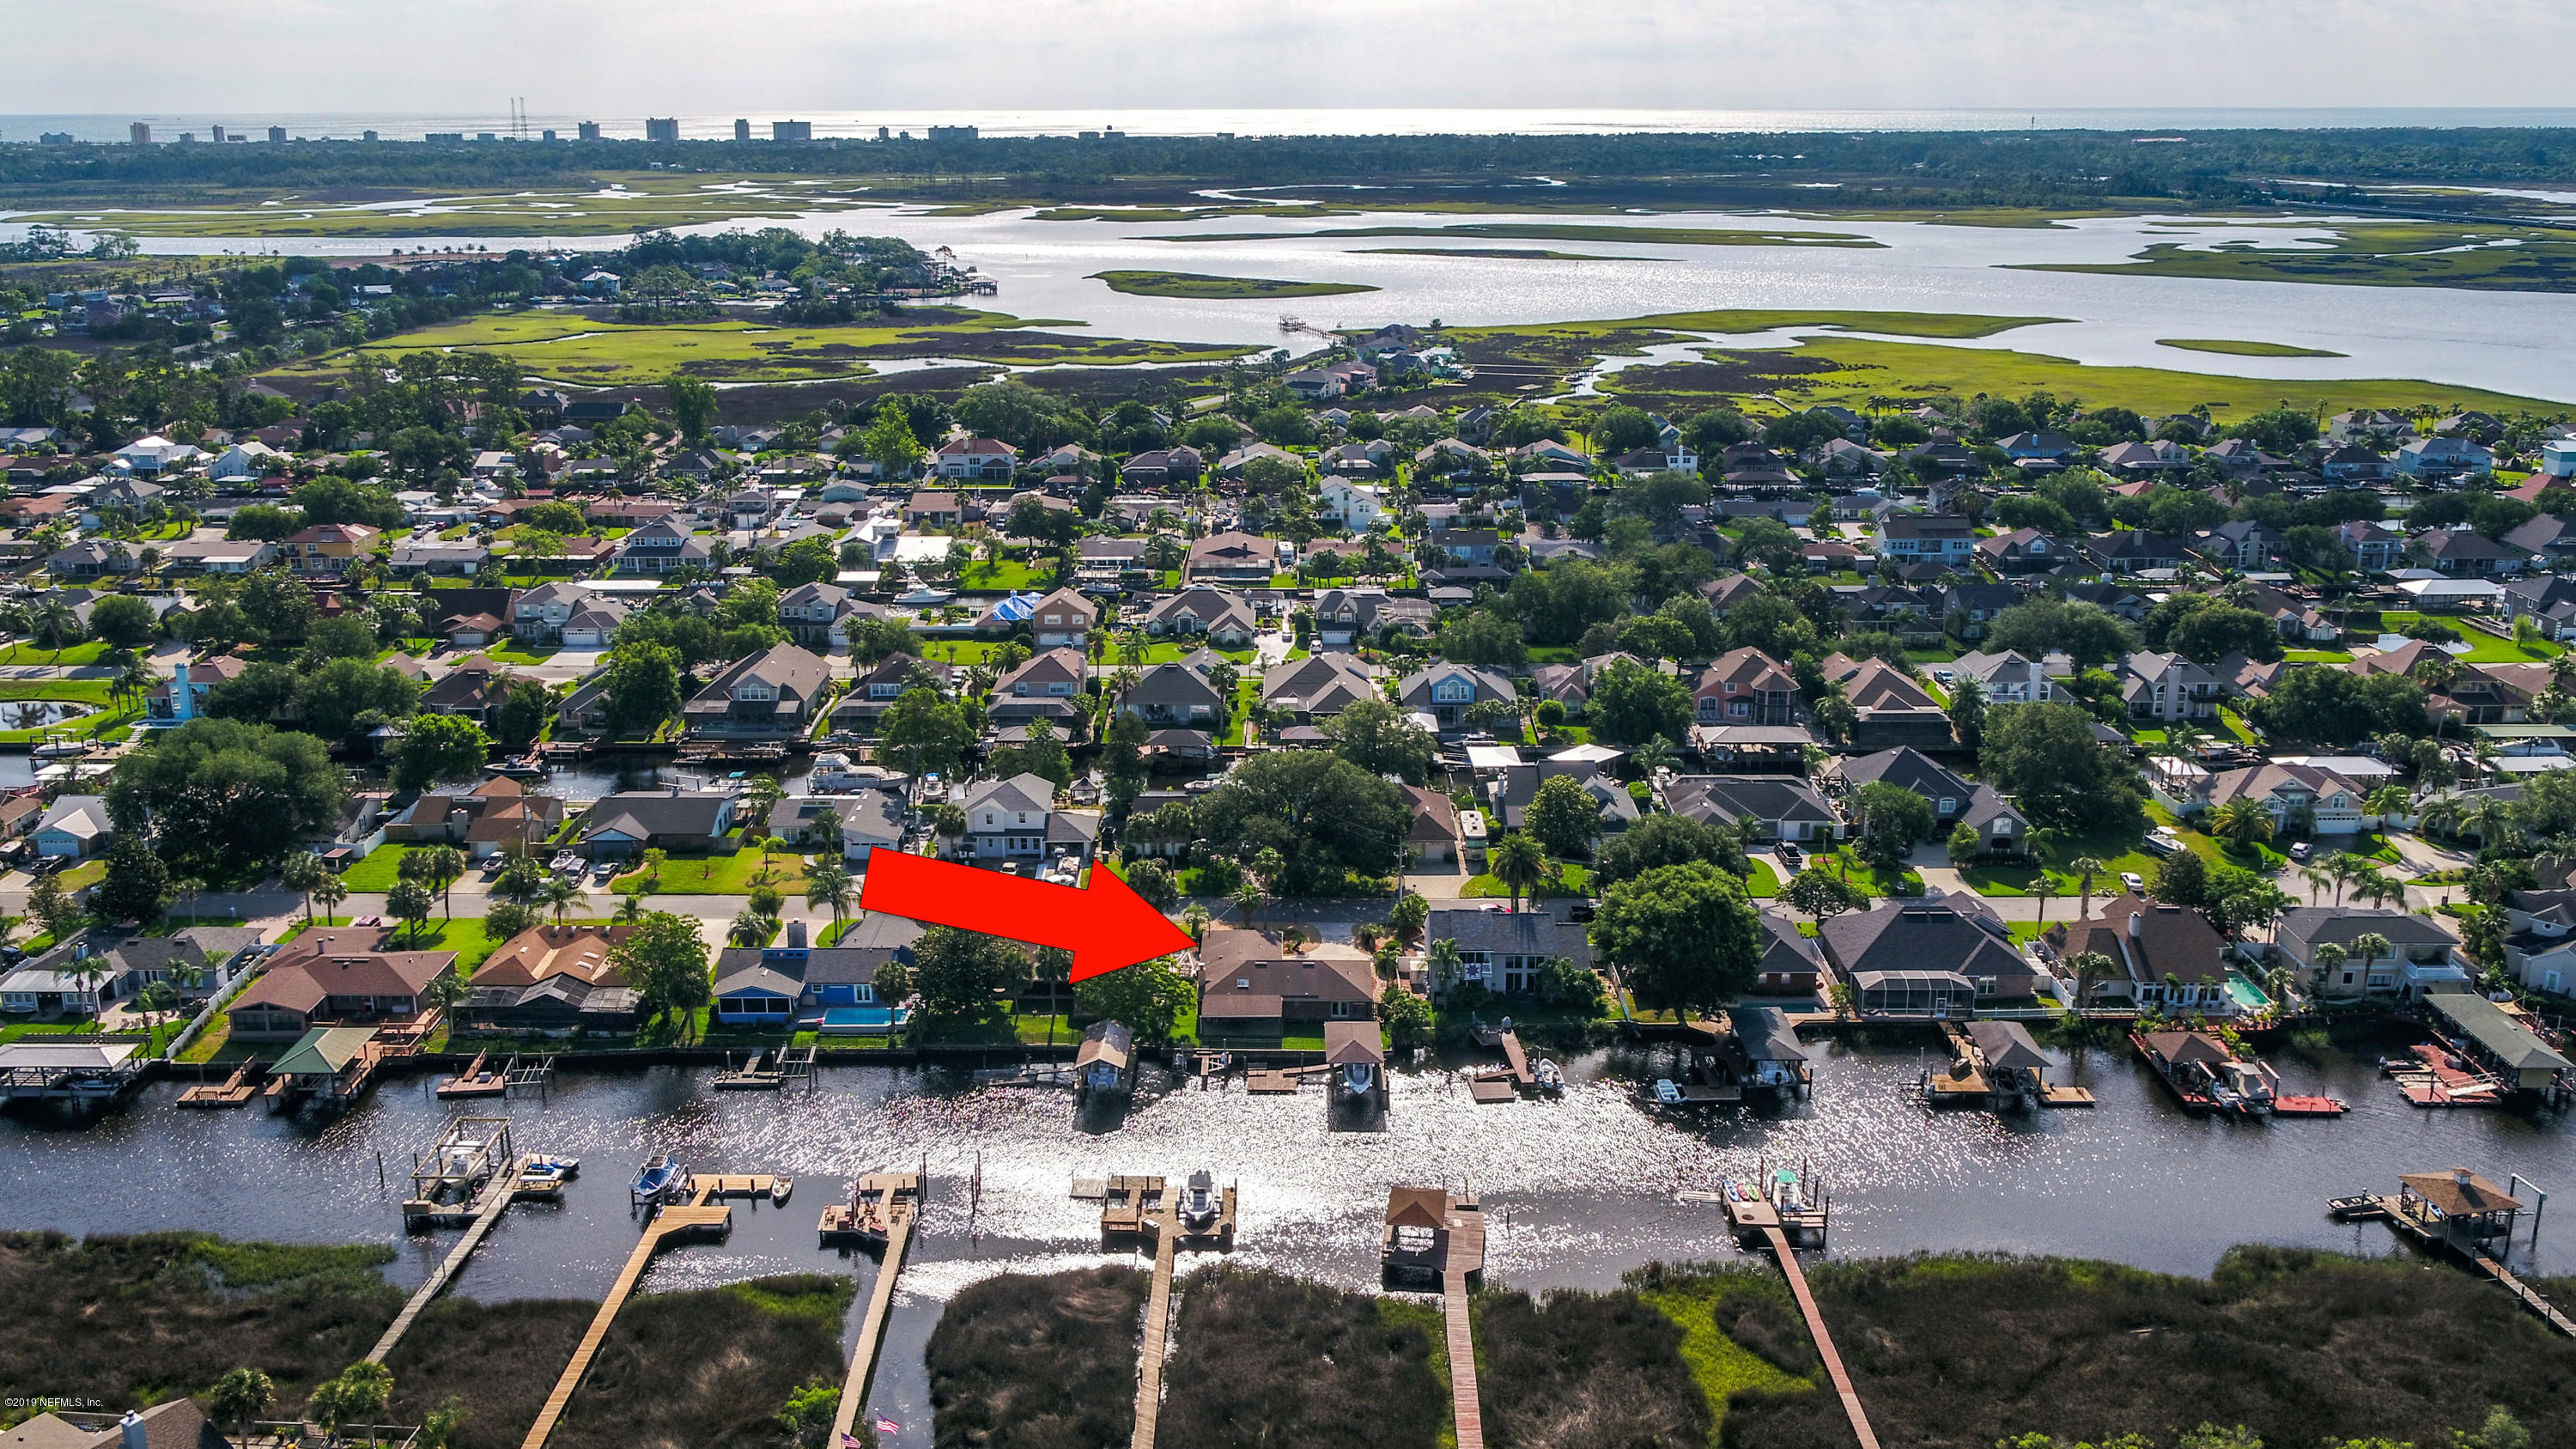 4376 TIDEVIEW, JACKSONVILLE BEACH, FLORIDA 32250, 3 Bedrooms Bedrooms, ,2 BathroomsBathrooms,Residential - single family,For sale,TIDEVIEW,995368